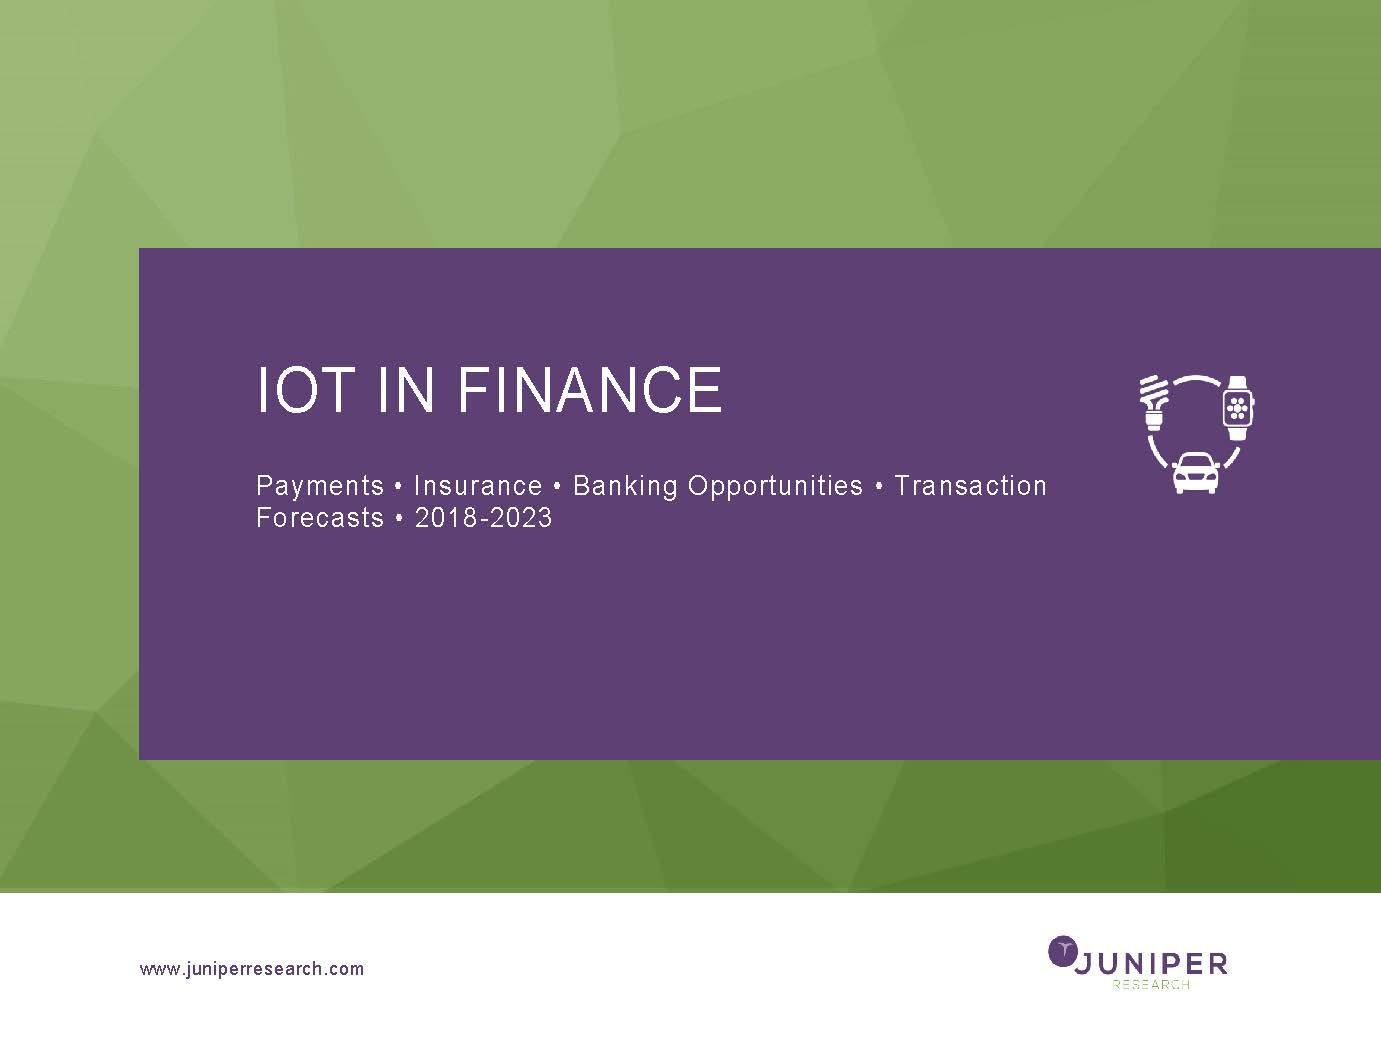 IoT in Finance: Payments, Insurance & Banking Opportunities, Transaction Forecasts 2018-2023